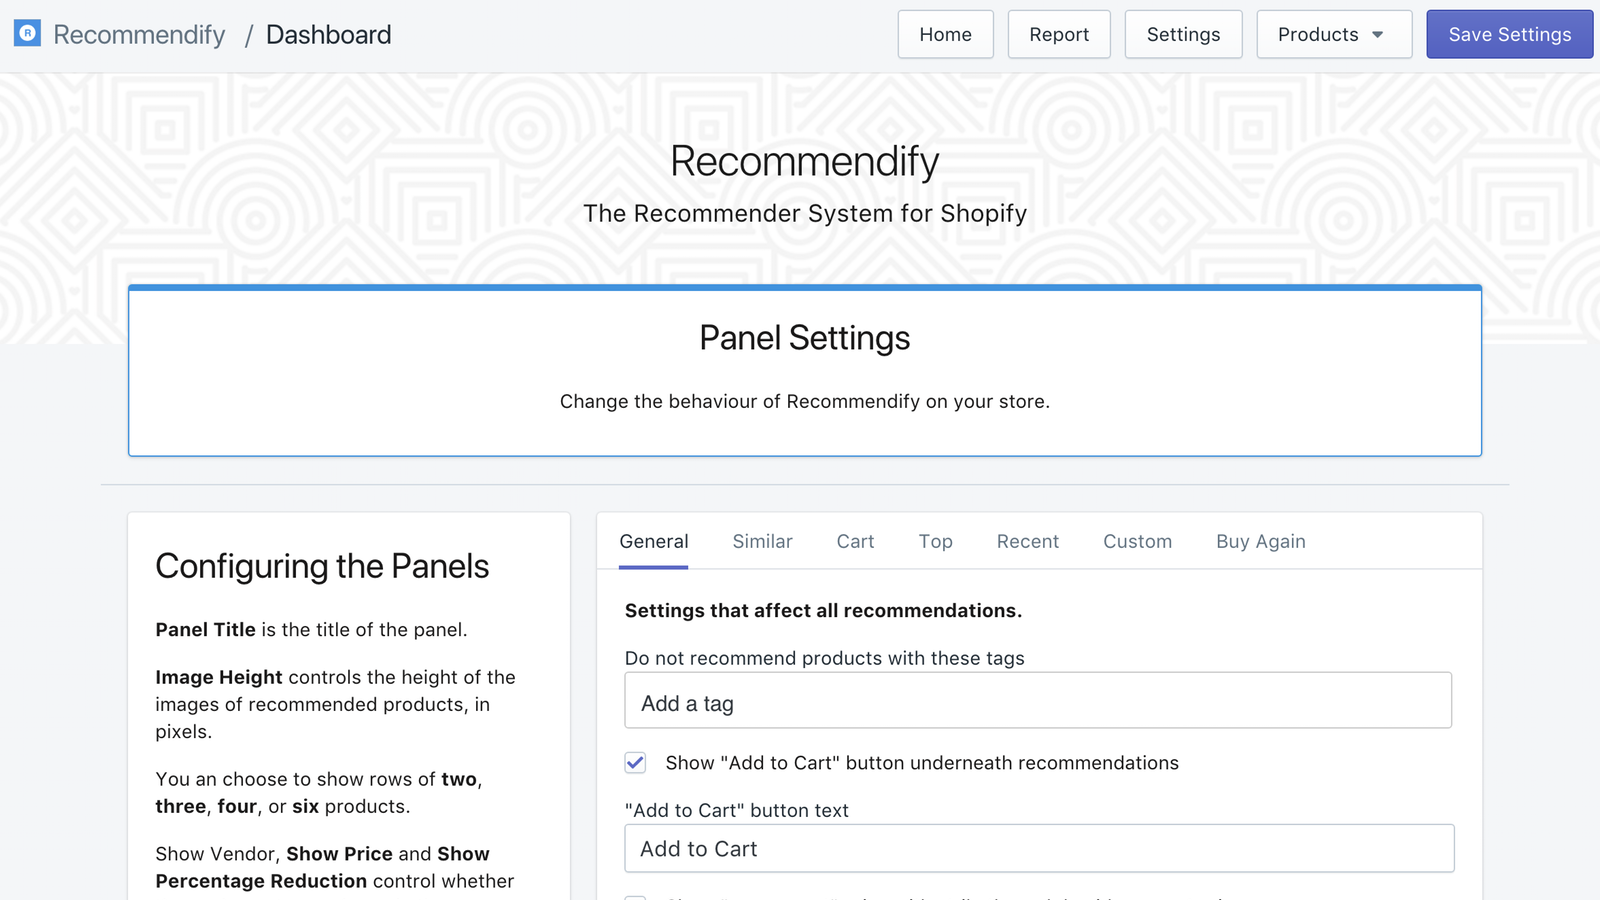 Settings page in dashboard